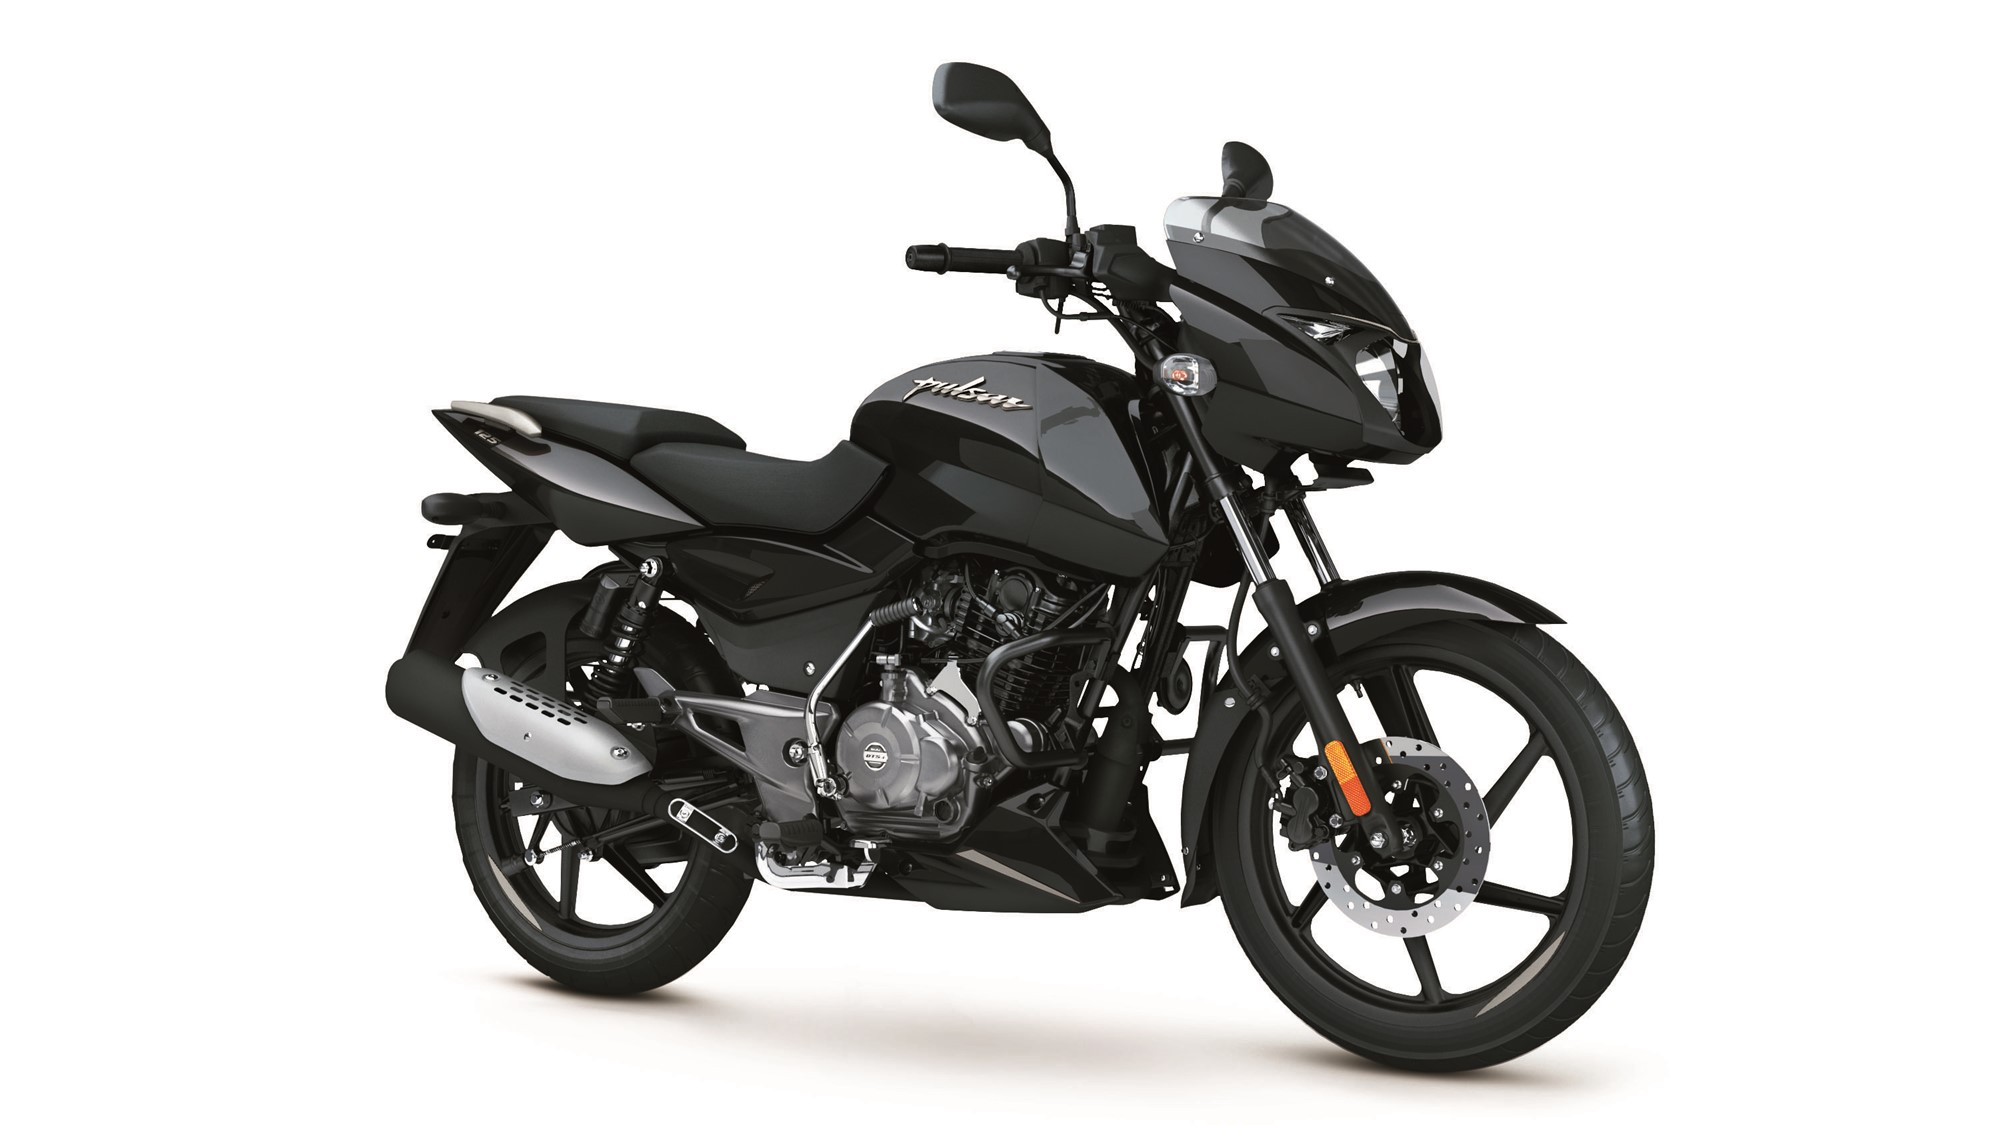 Bajaj Pulsar 125 Split Seat Black Silver colour option